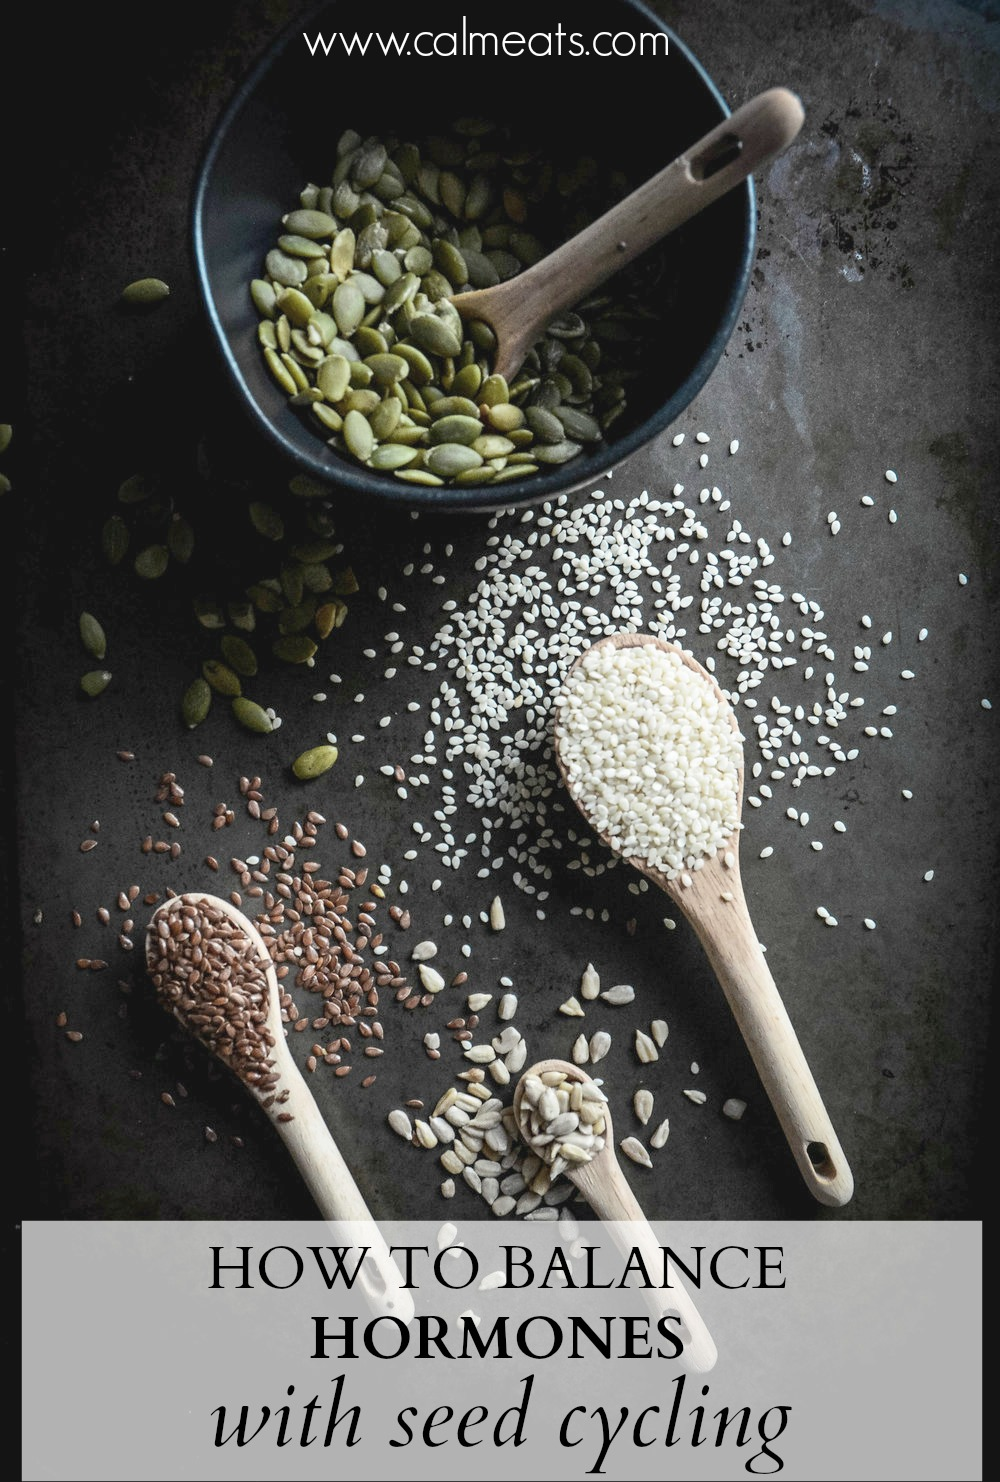 Between chronic stress, lack of proper nutrition and sedentary lifestyle, our hormones have been out of whack but there are a few things you can do to get yourself feeling like yourself again. Seed cycling is an effective, inexpensive way to do this. #seedcycling #hormonehealth #hormonebalance #glutenfree #dairyfree #hormones #estrogenbalance #progesteronebalance